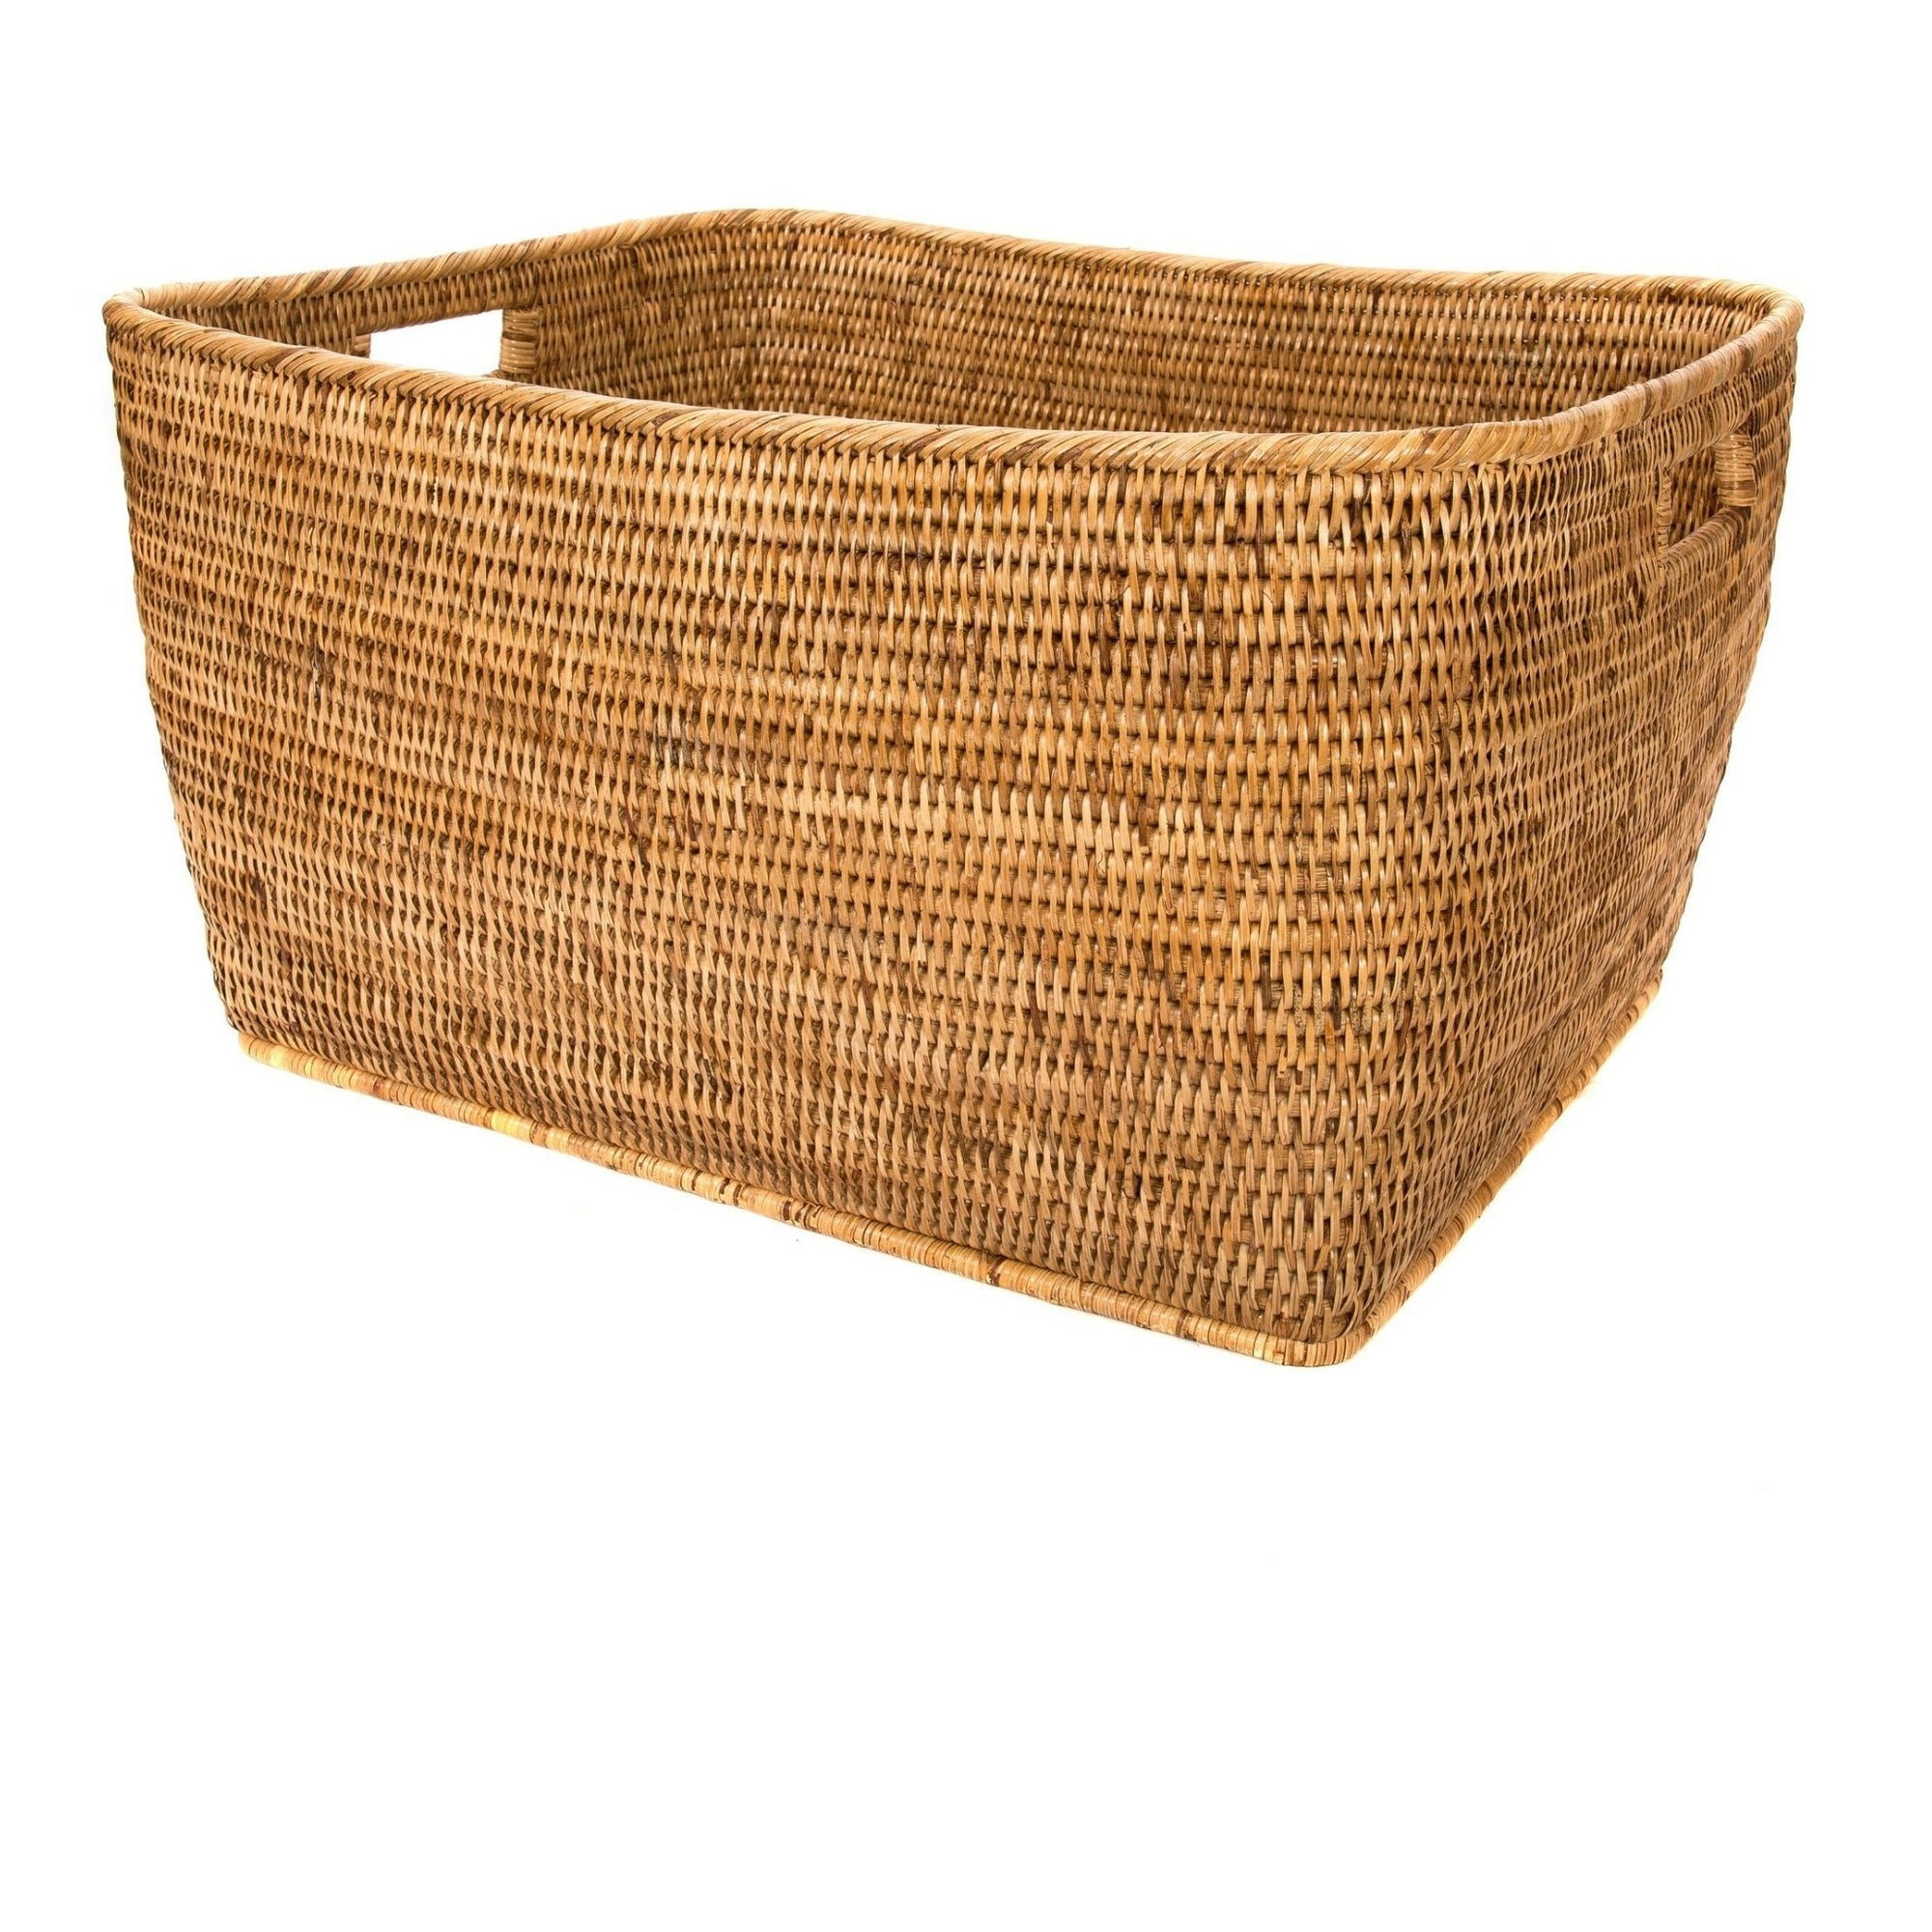 Family Basket